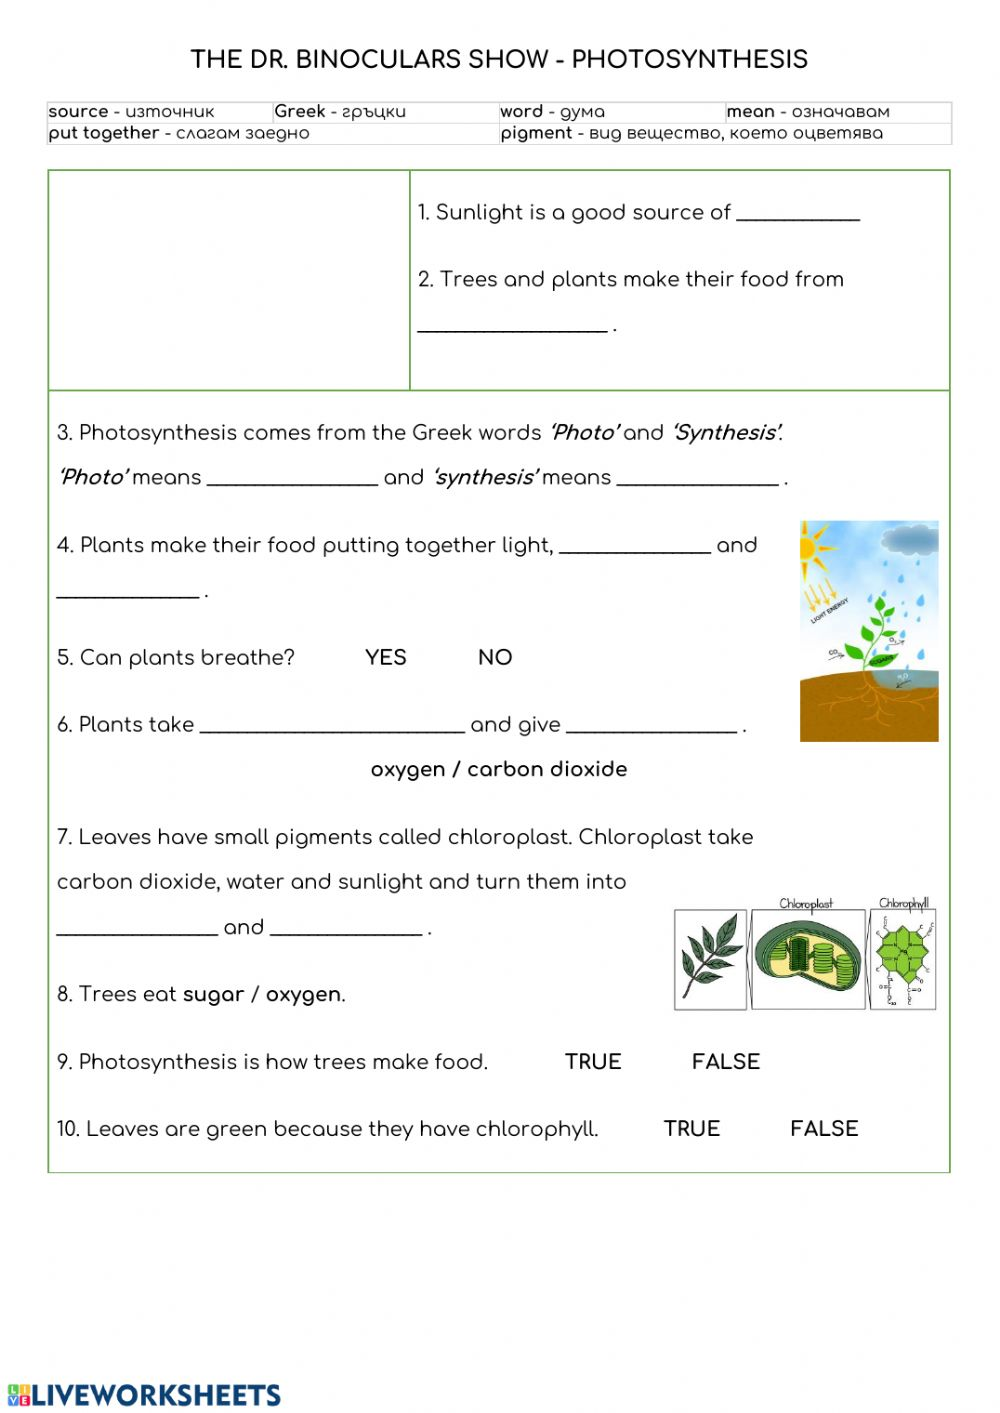 Photosynthesis Interactive worksheet